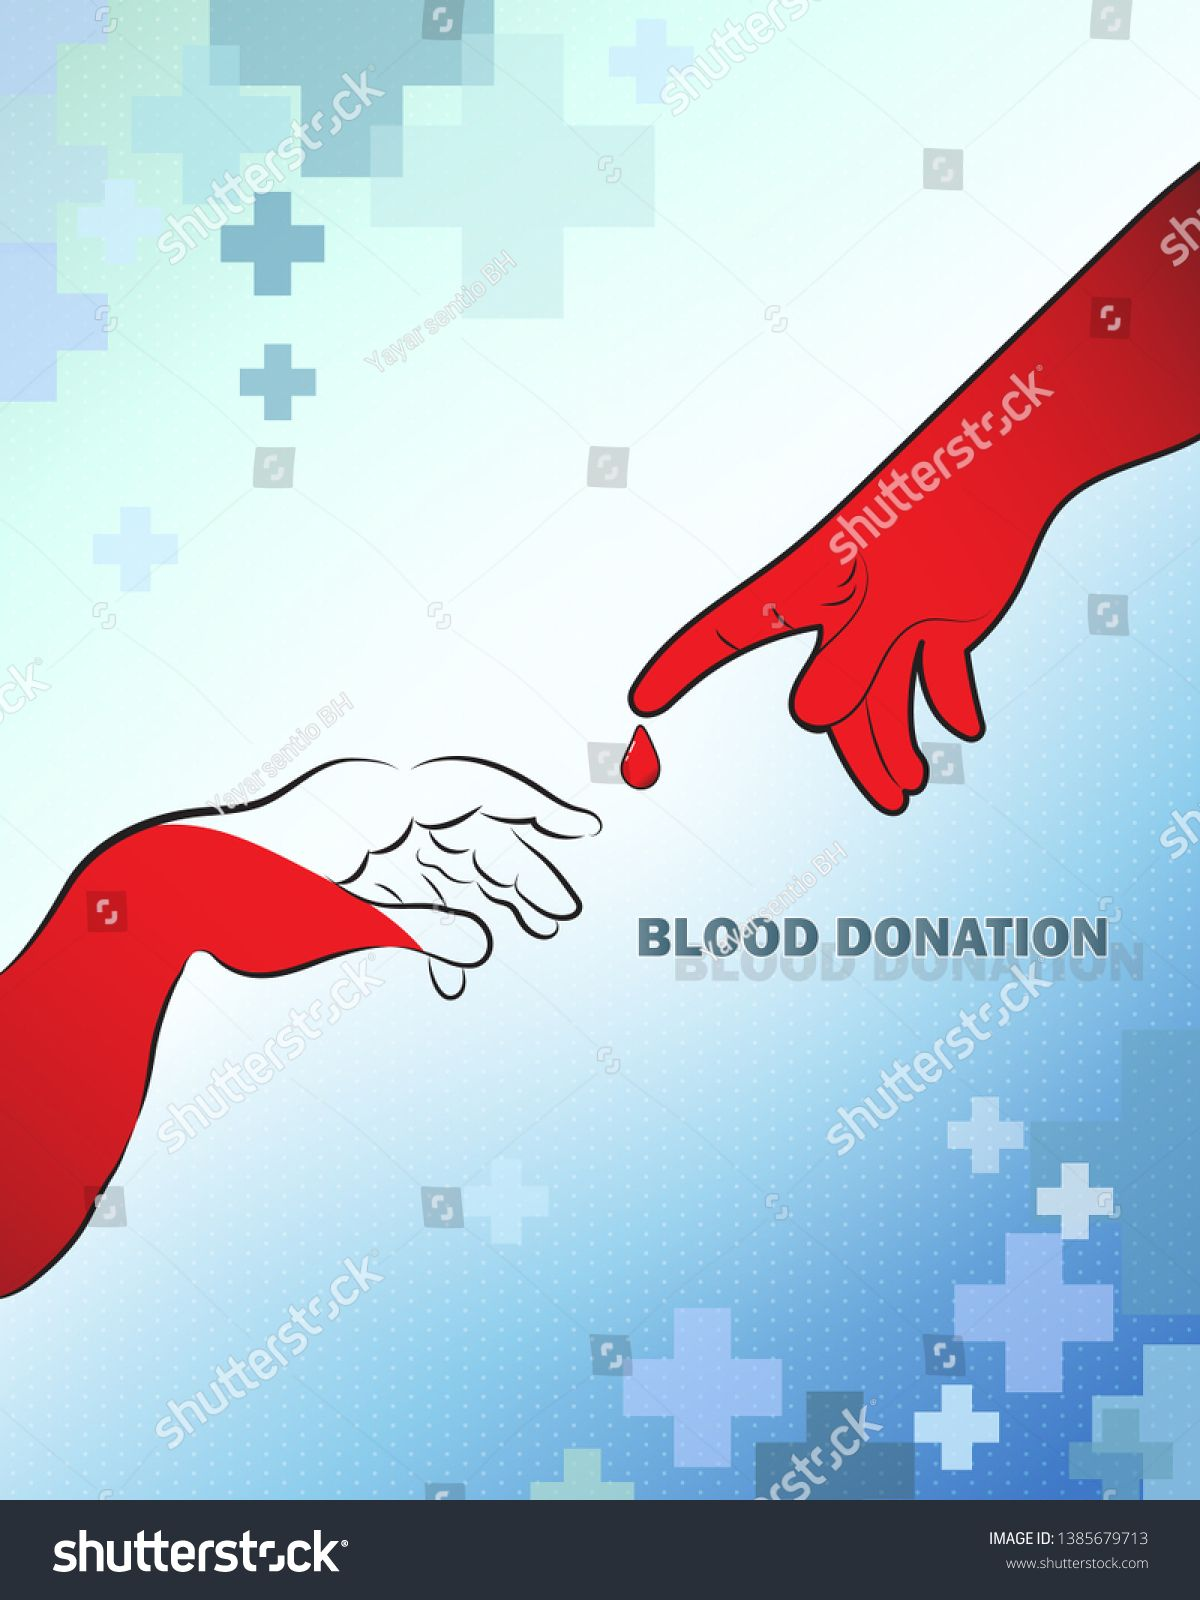 Blood donation design creative donor poster blood donor